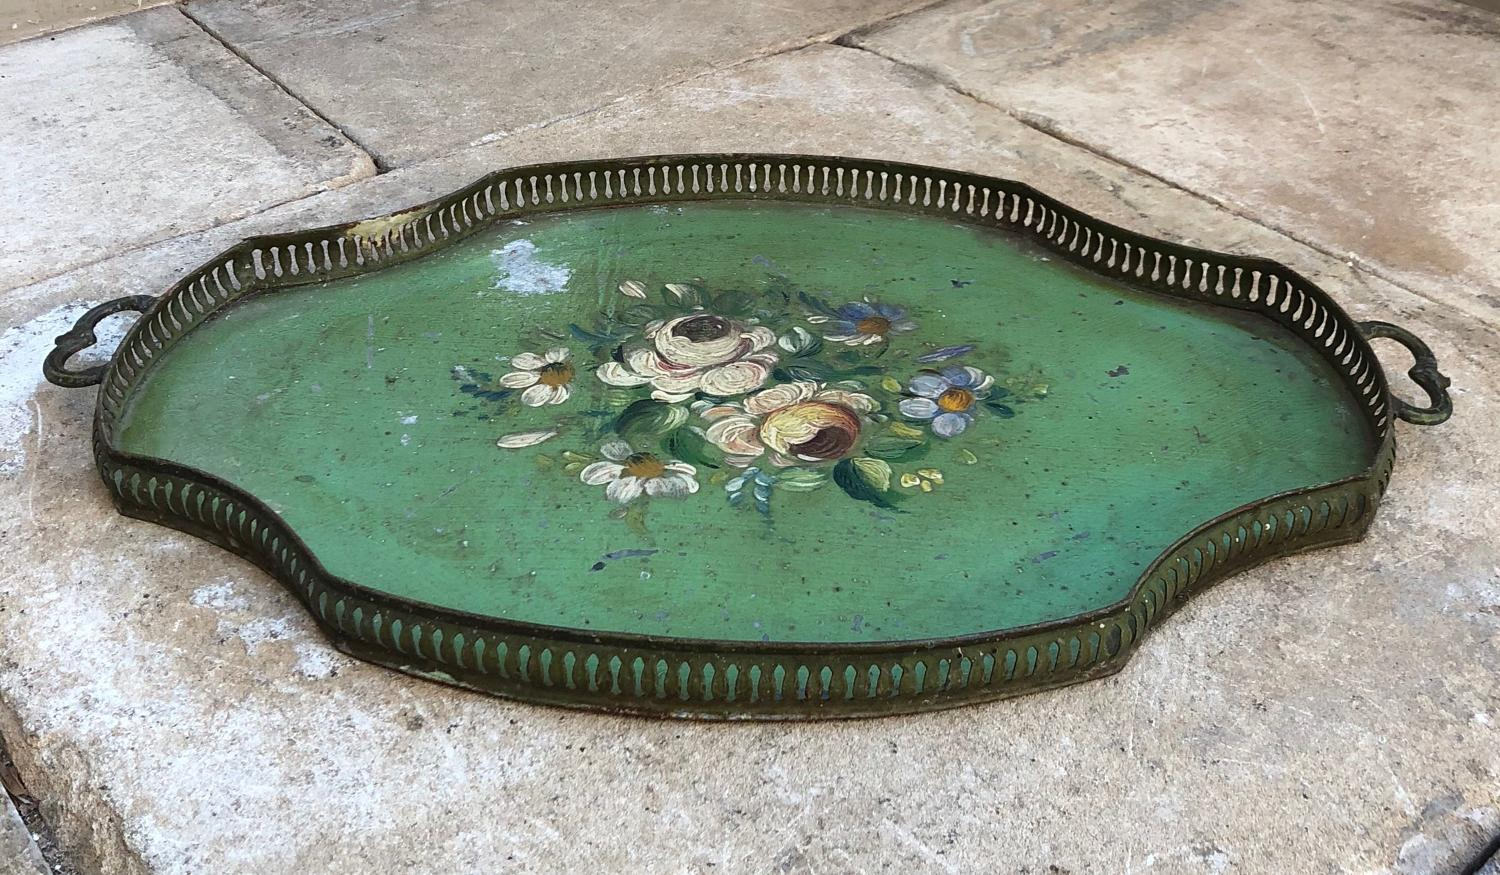 Victorian Toleware Tray with Filigree Edging & Ornate Iron Handles